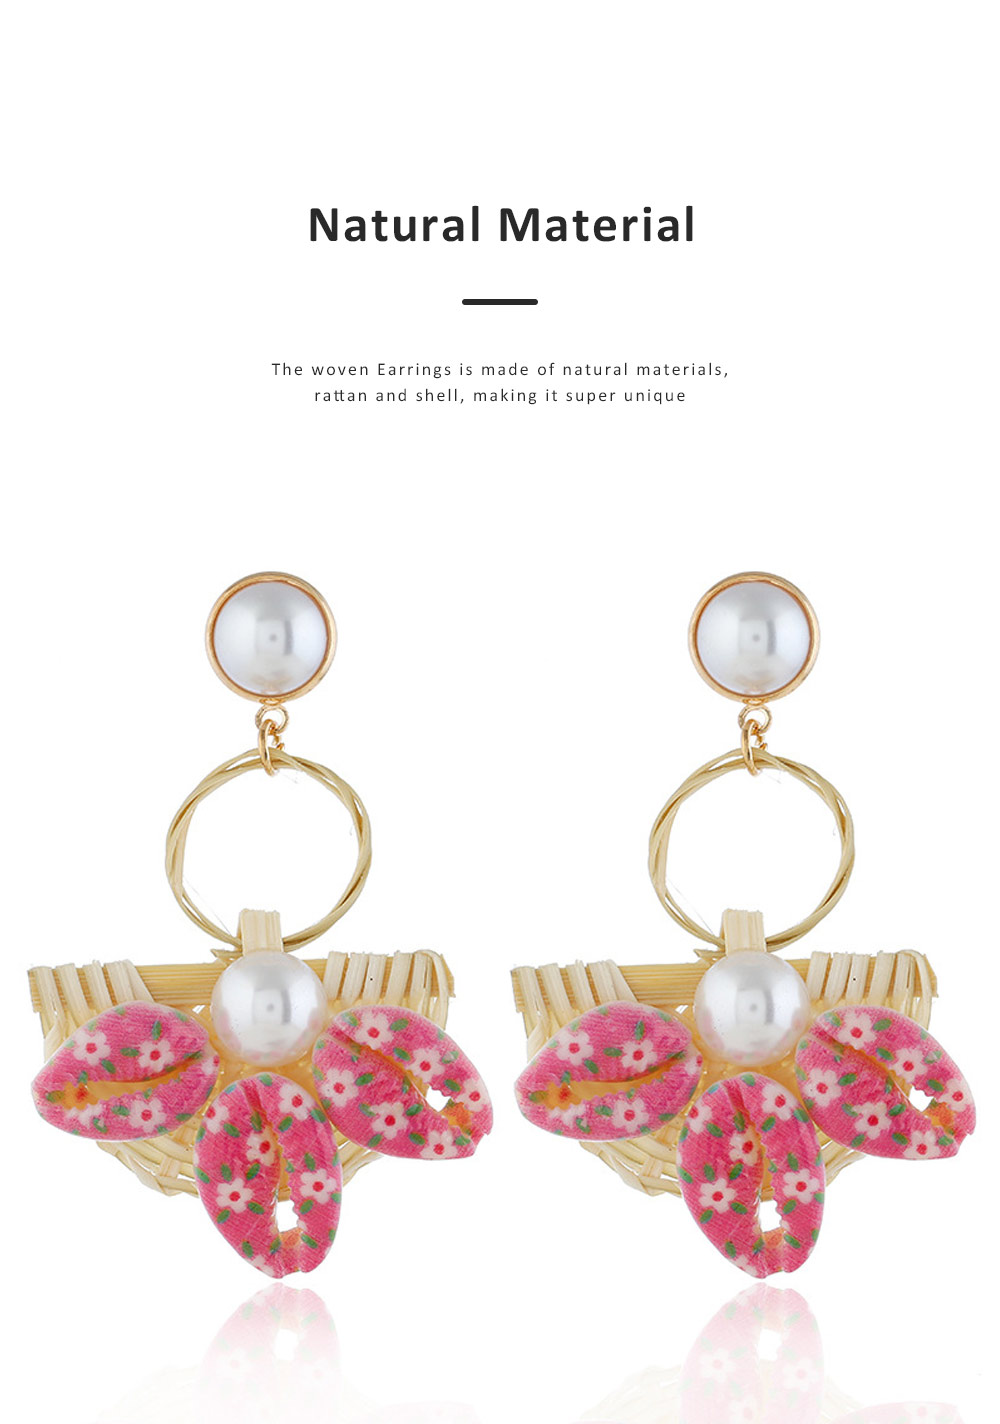 Natural Ocean Style Earring Colorful Outfit Accessory Jewelry Shell Rattan Pearl Earring for Women Girls 1